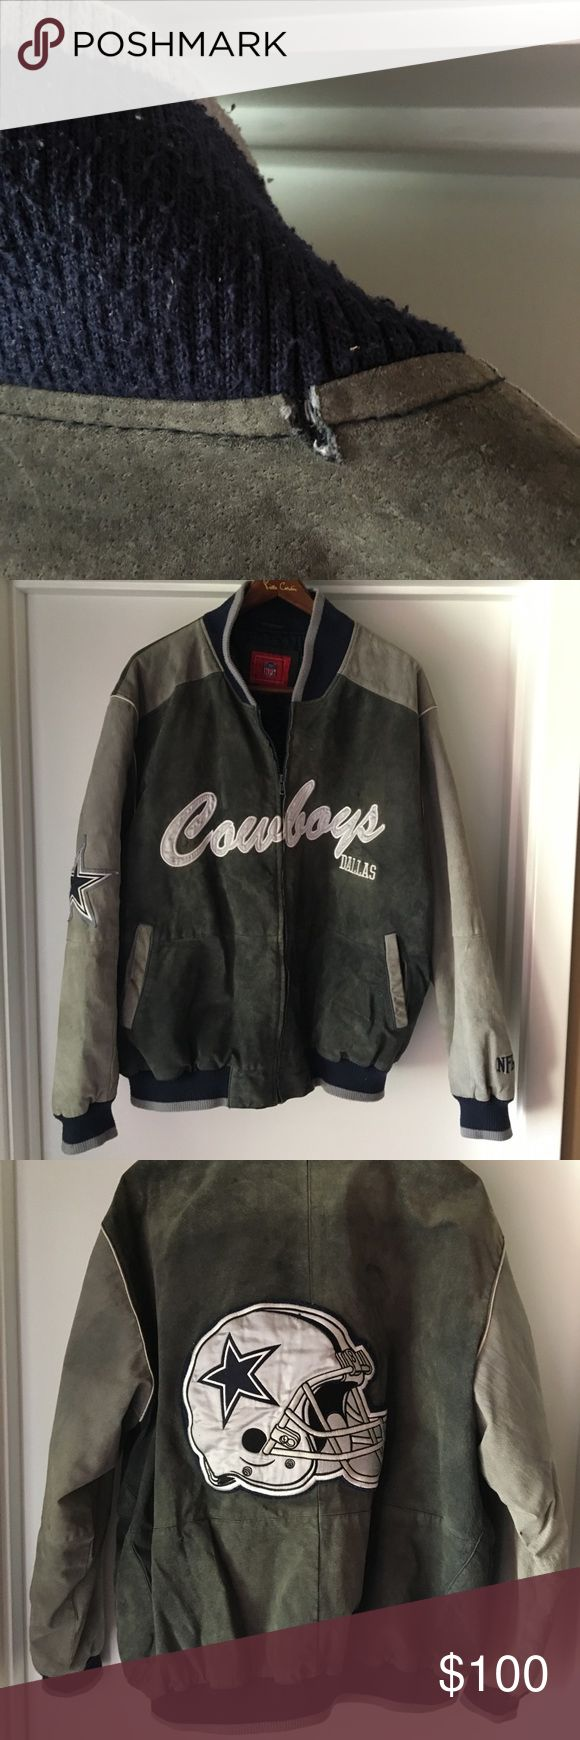 Dallas Cowboys Leather NFL Jacket Vintage heavy Leather jacket. It has been worn quite a bit, and has a slight tear on the back collar as shown in the picture and pilling around the entire collar. Size XL Mens. Make an offer!!! Jackets & Coats Bomber & Varsity